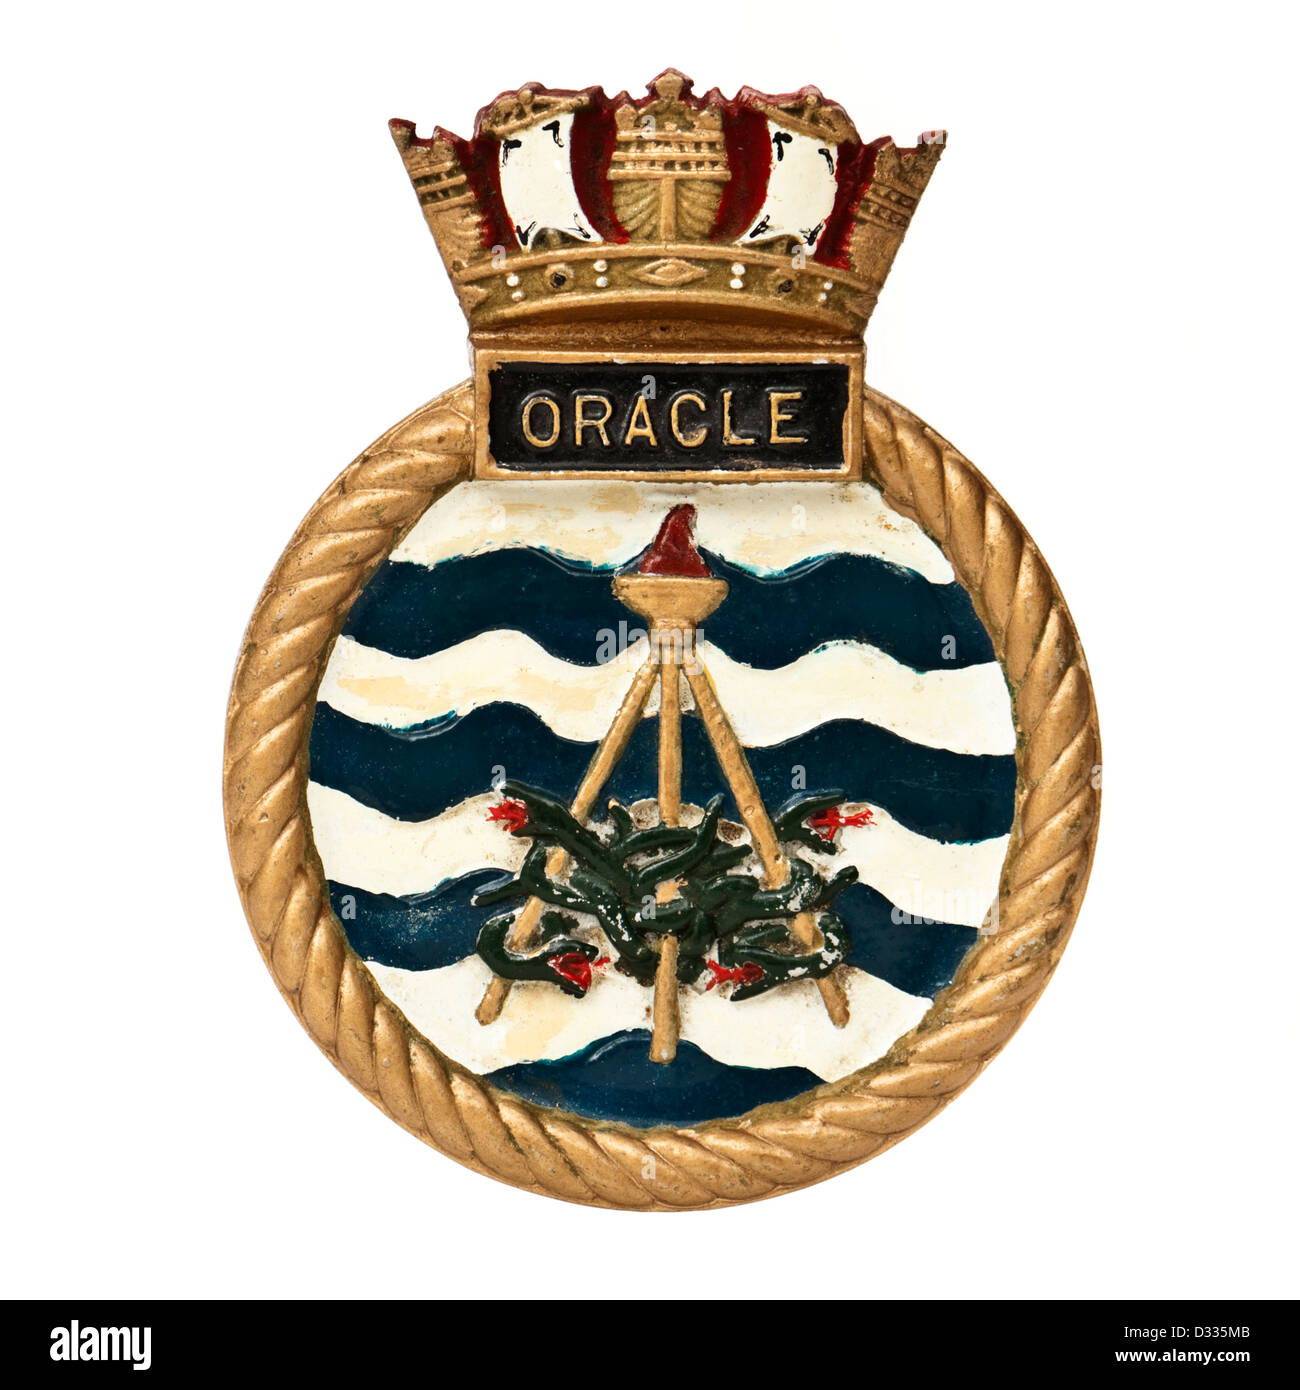 Crest of HMS Oracle, an Oberon-class submarine (S-16) of the British Royal Navy (in service from 1963 to 1993) - Stock Image